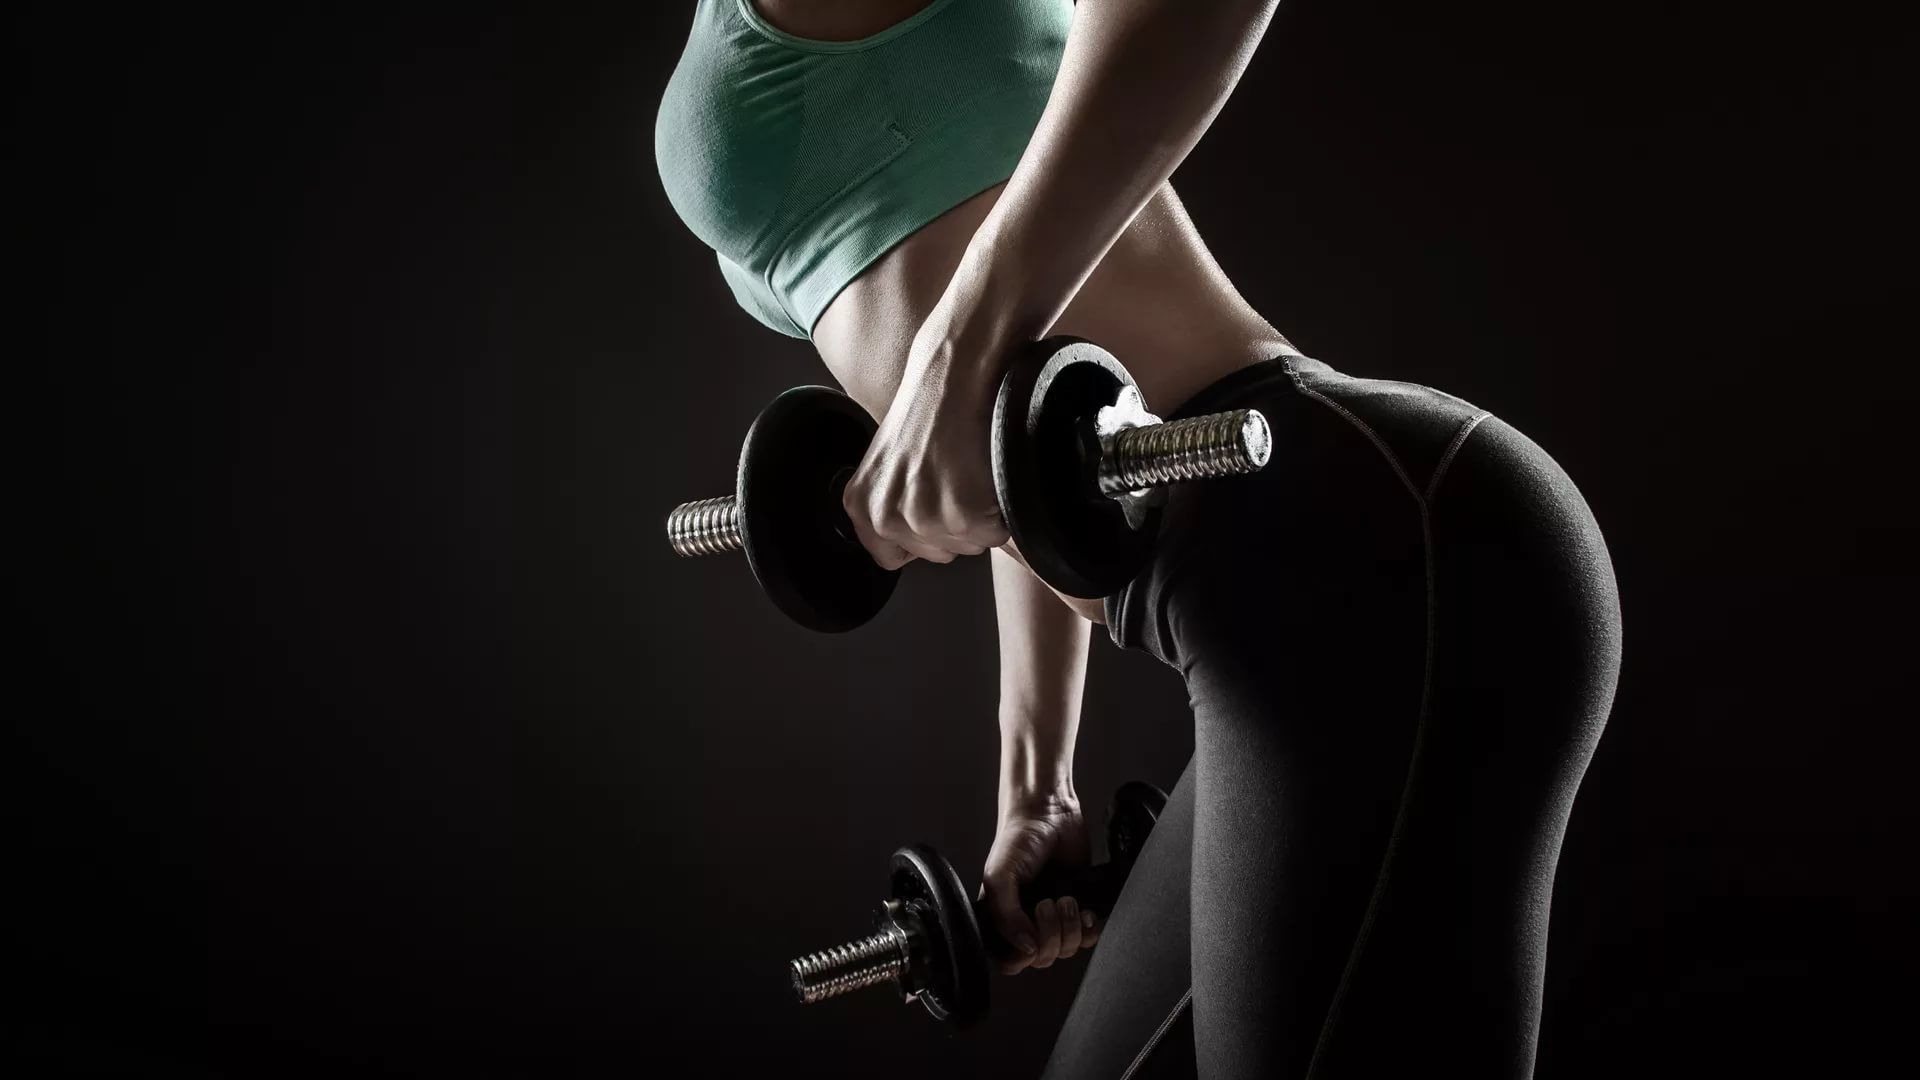 Workout Wallpaper and Background